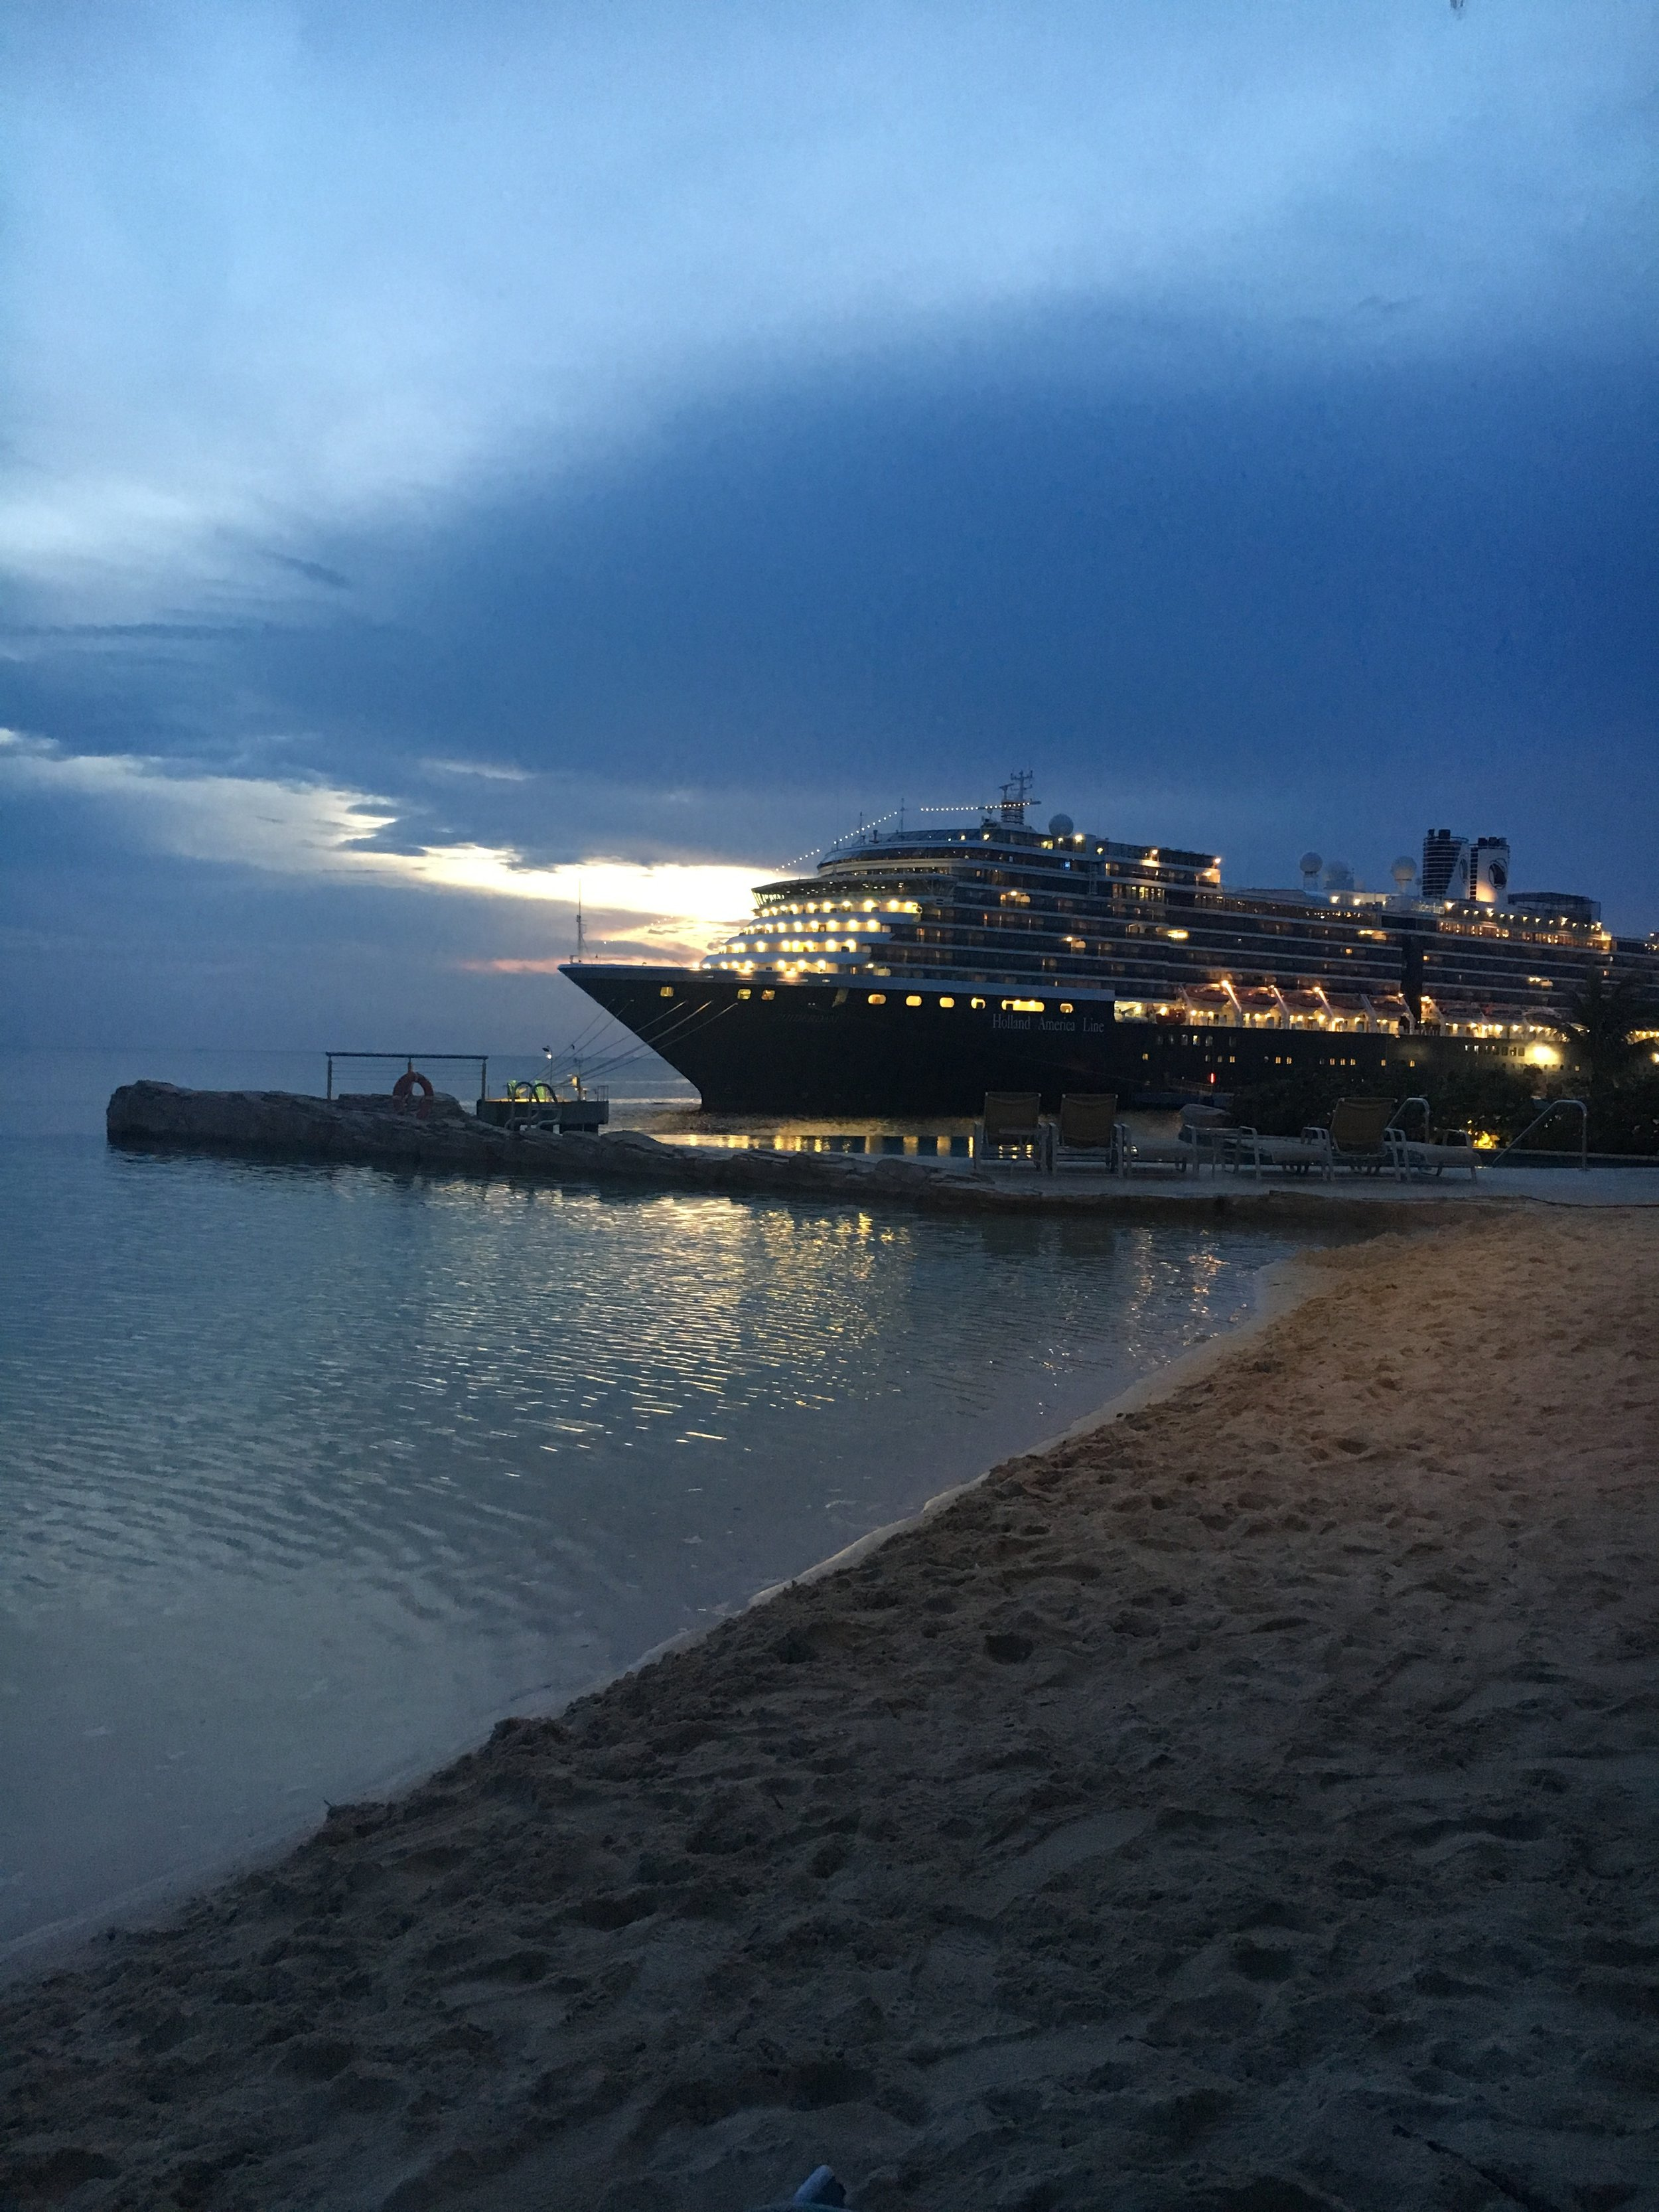 Cruise ships from the beach